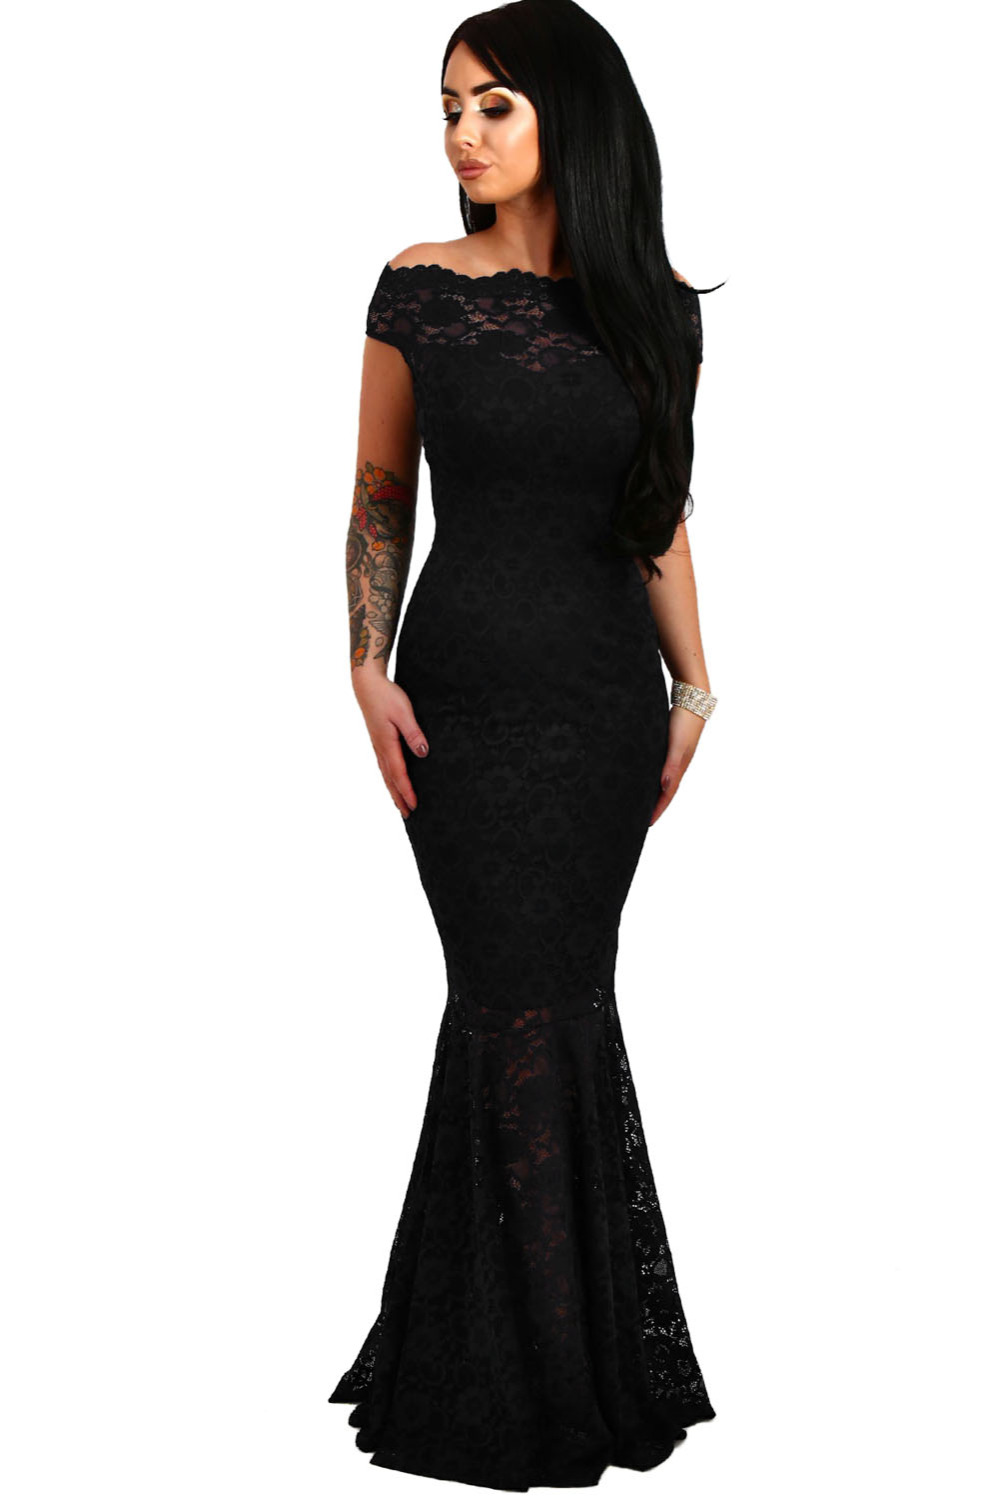 25880f178d 2018 New Arrival Summer Women s Fashion Pink Red Navy Black White Bardot  Lace Fishtail Maxi Dress LGY61481